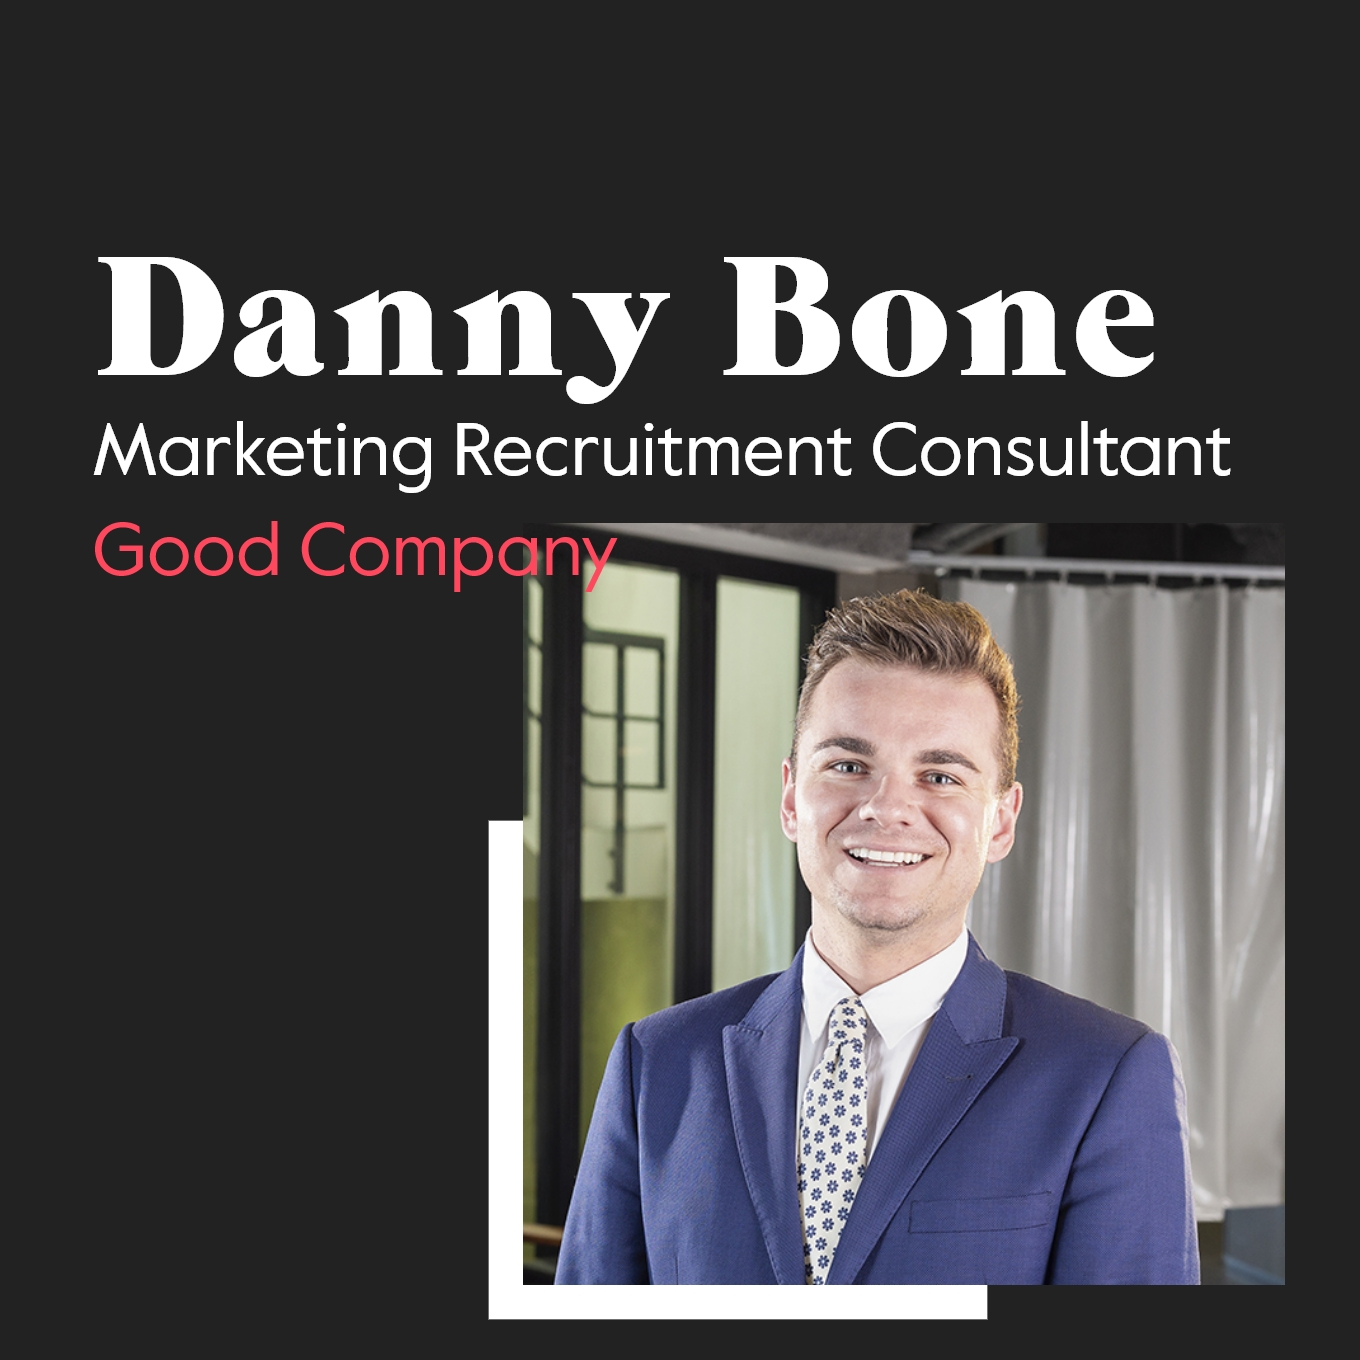 Danny Bone Recruitment Consultant Good Company